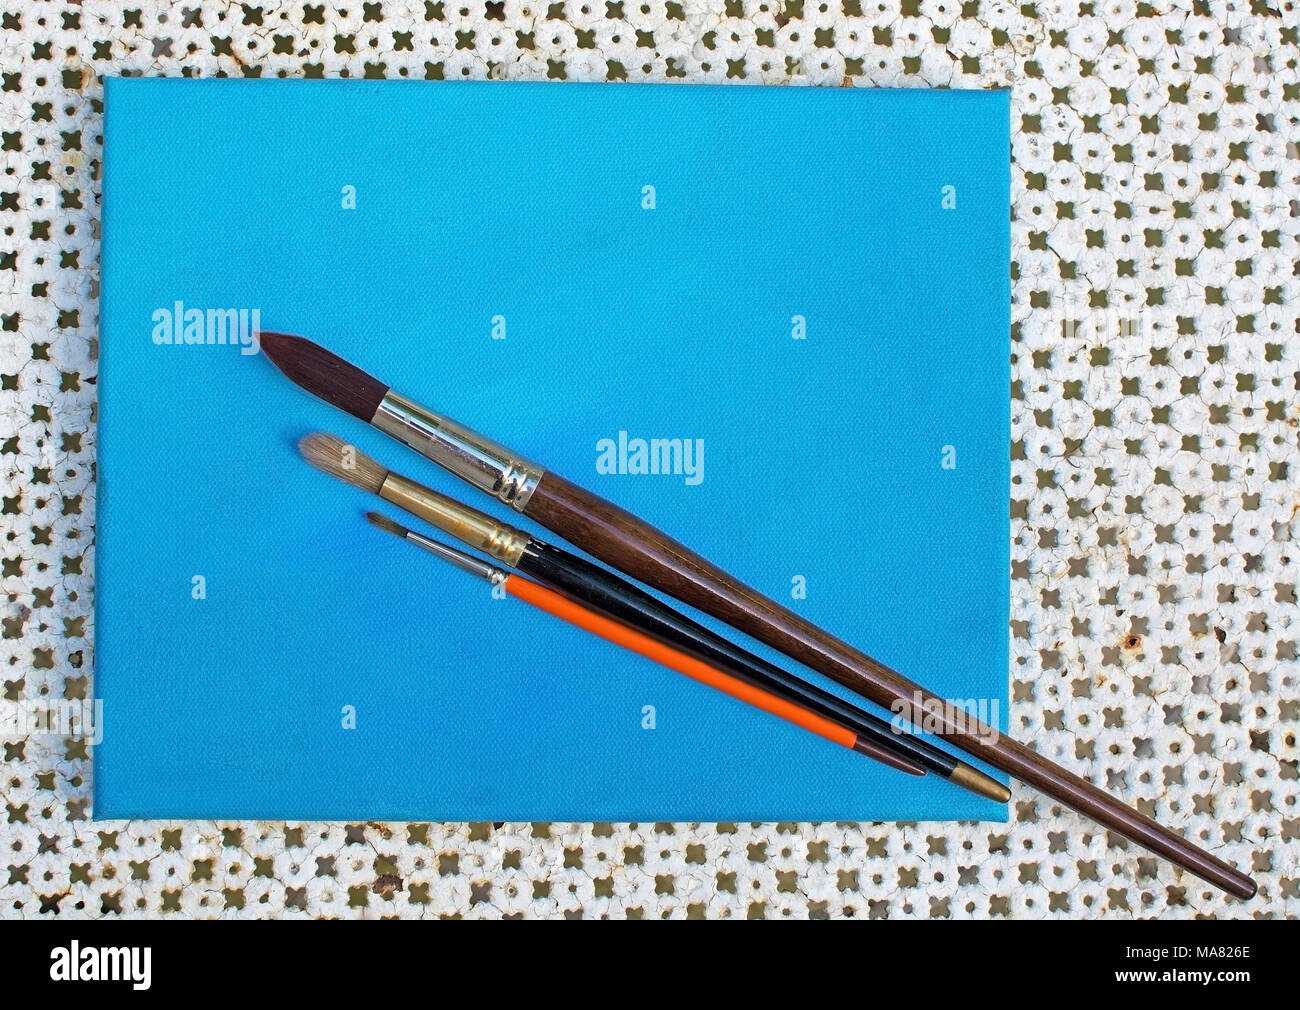 Skillset Stock Photos & Skillset Stock Images - Alamy